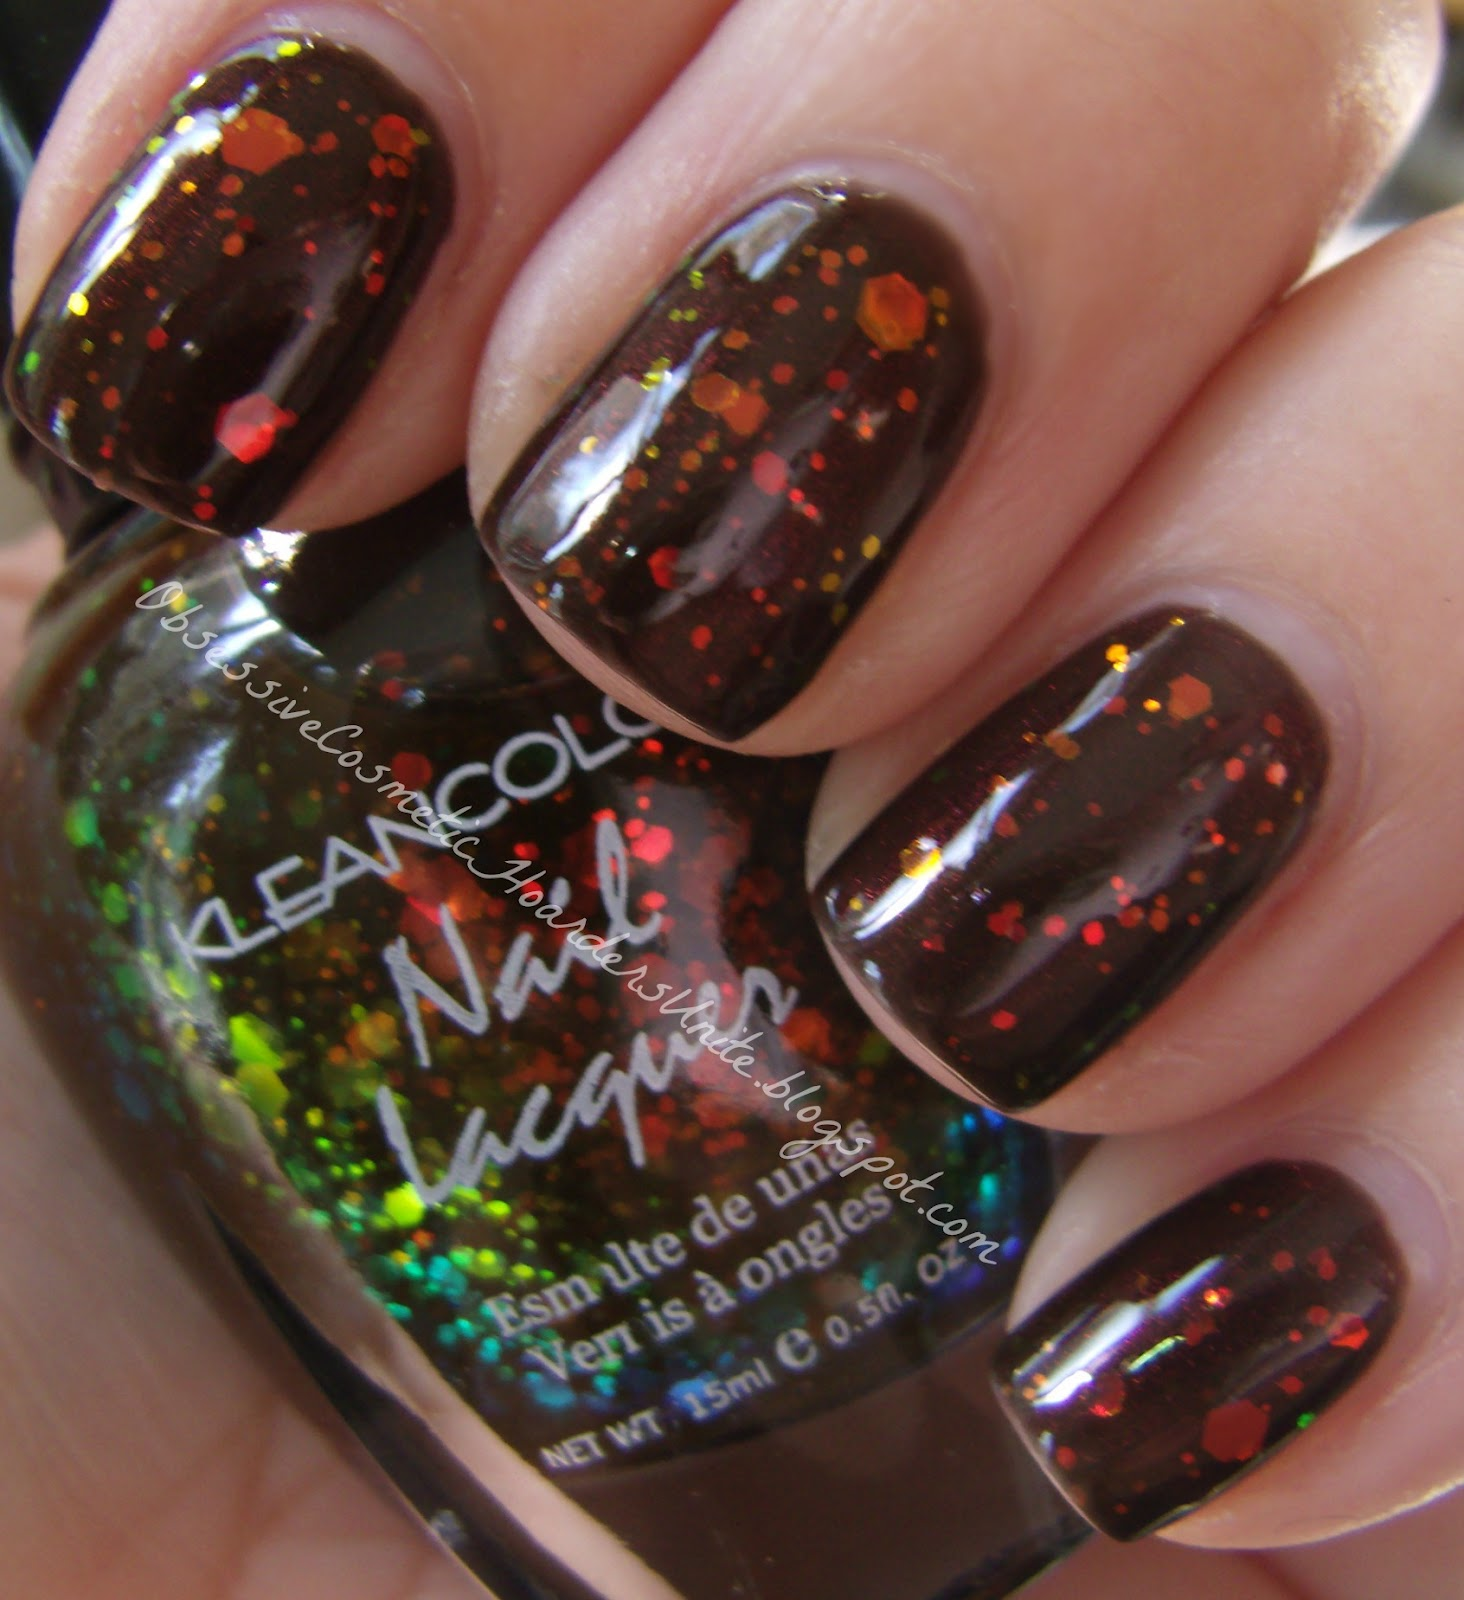 Black Nail Polish What Does It Mean: Obsessive Cosmetic Hoarders Unite!: Wet N Wild Megalast